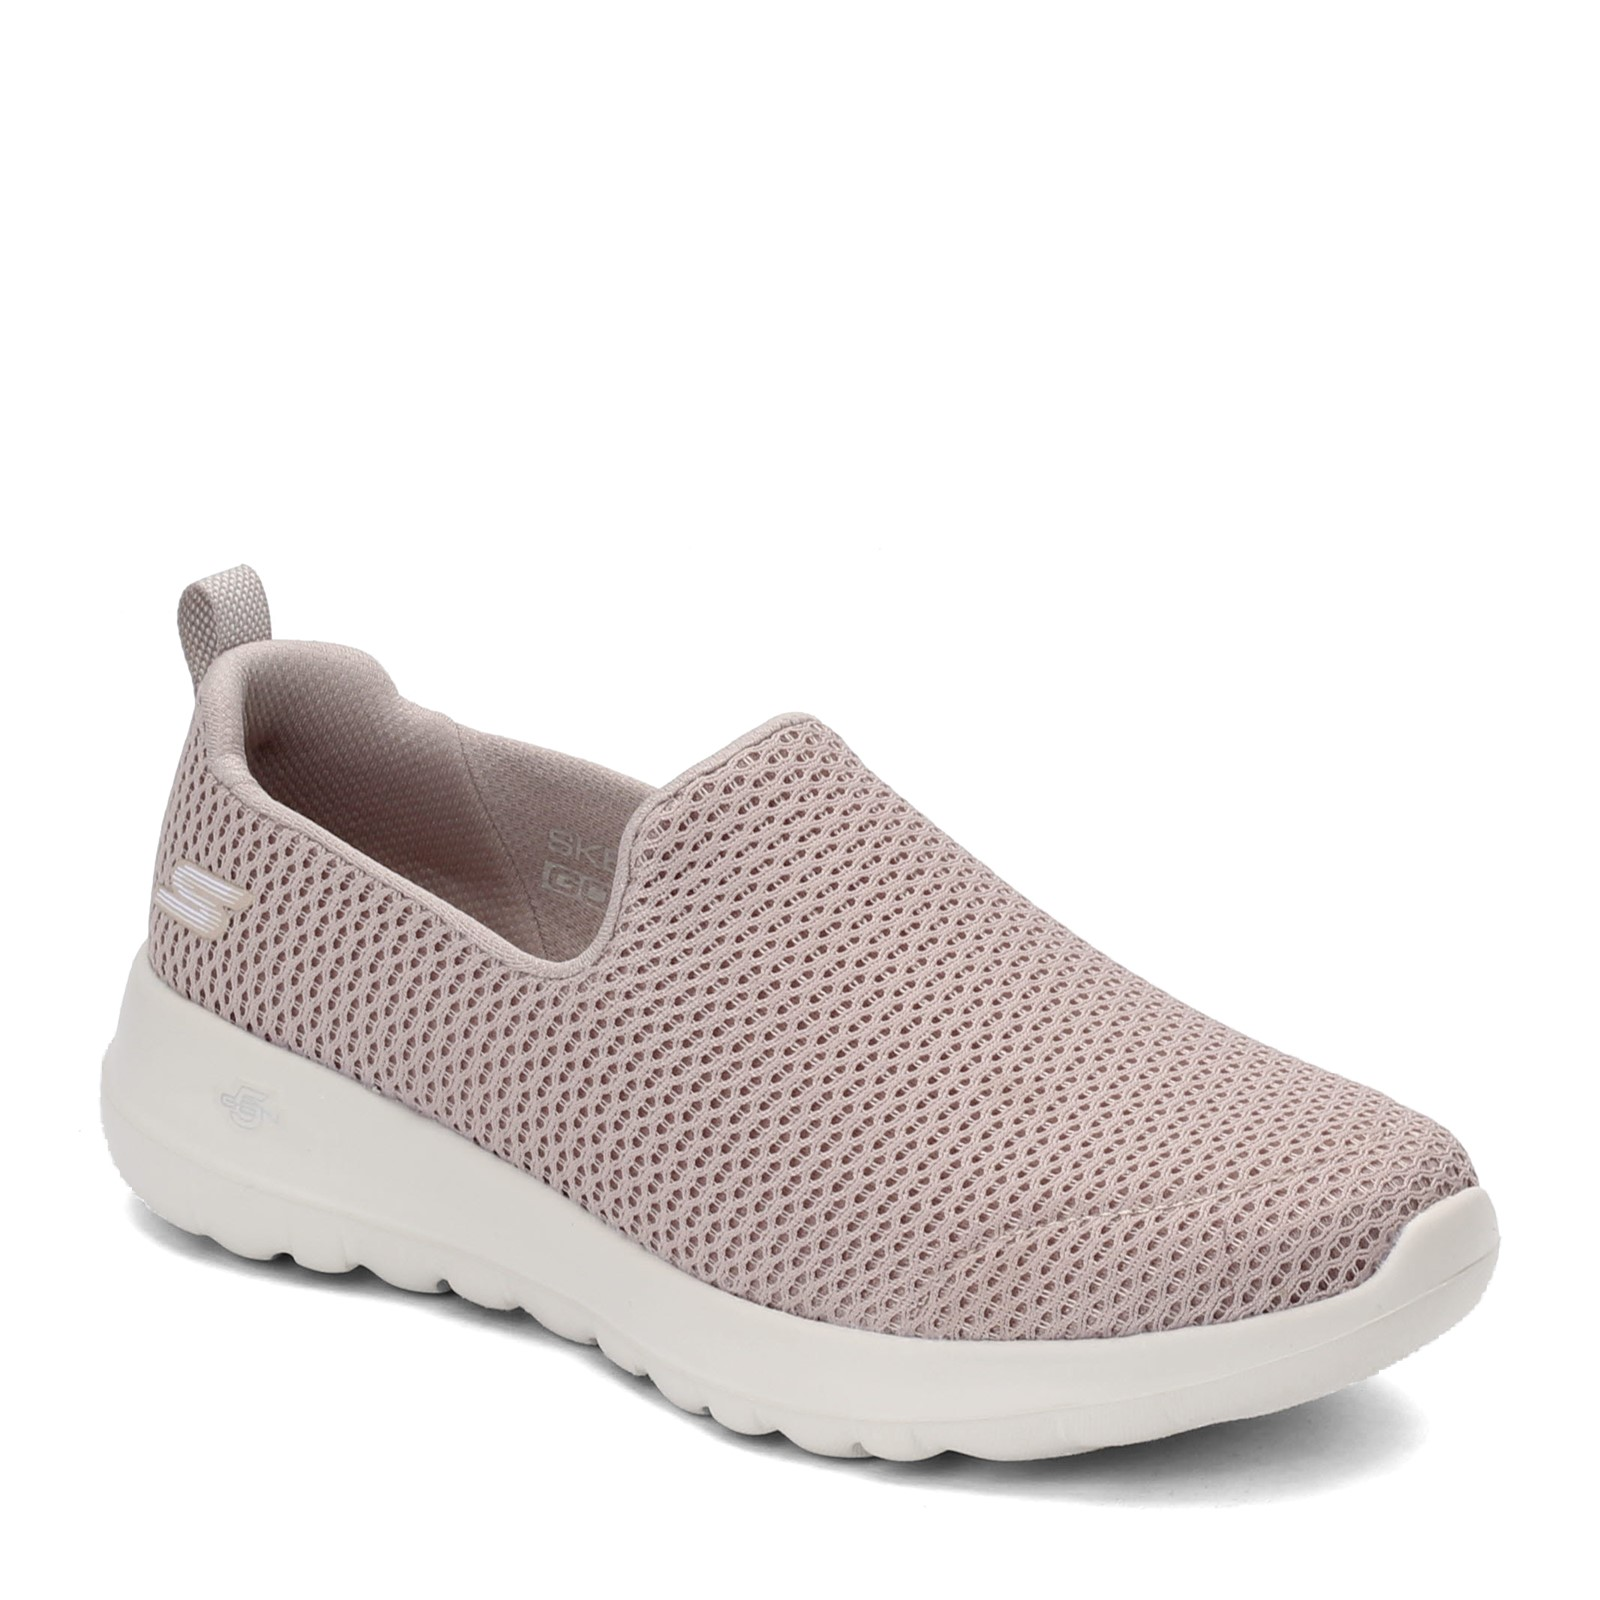 Women's Skechers Performance, GOwalk Joy Slip-On